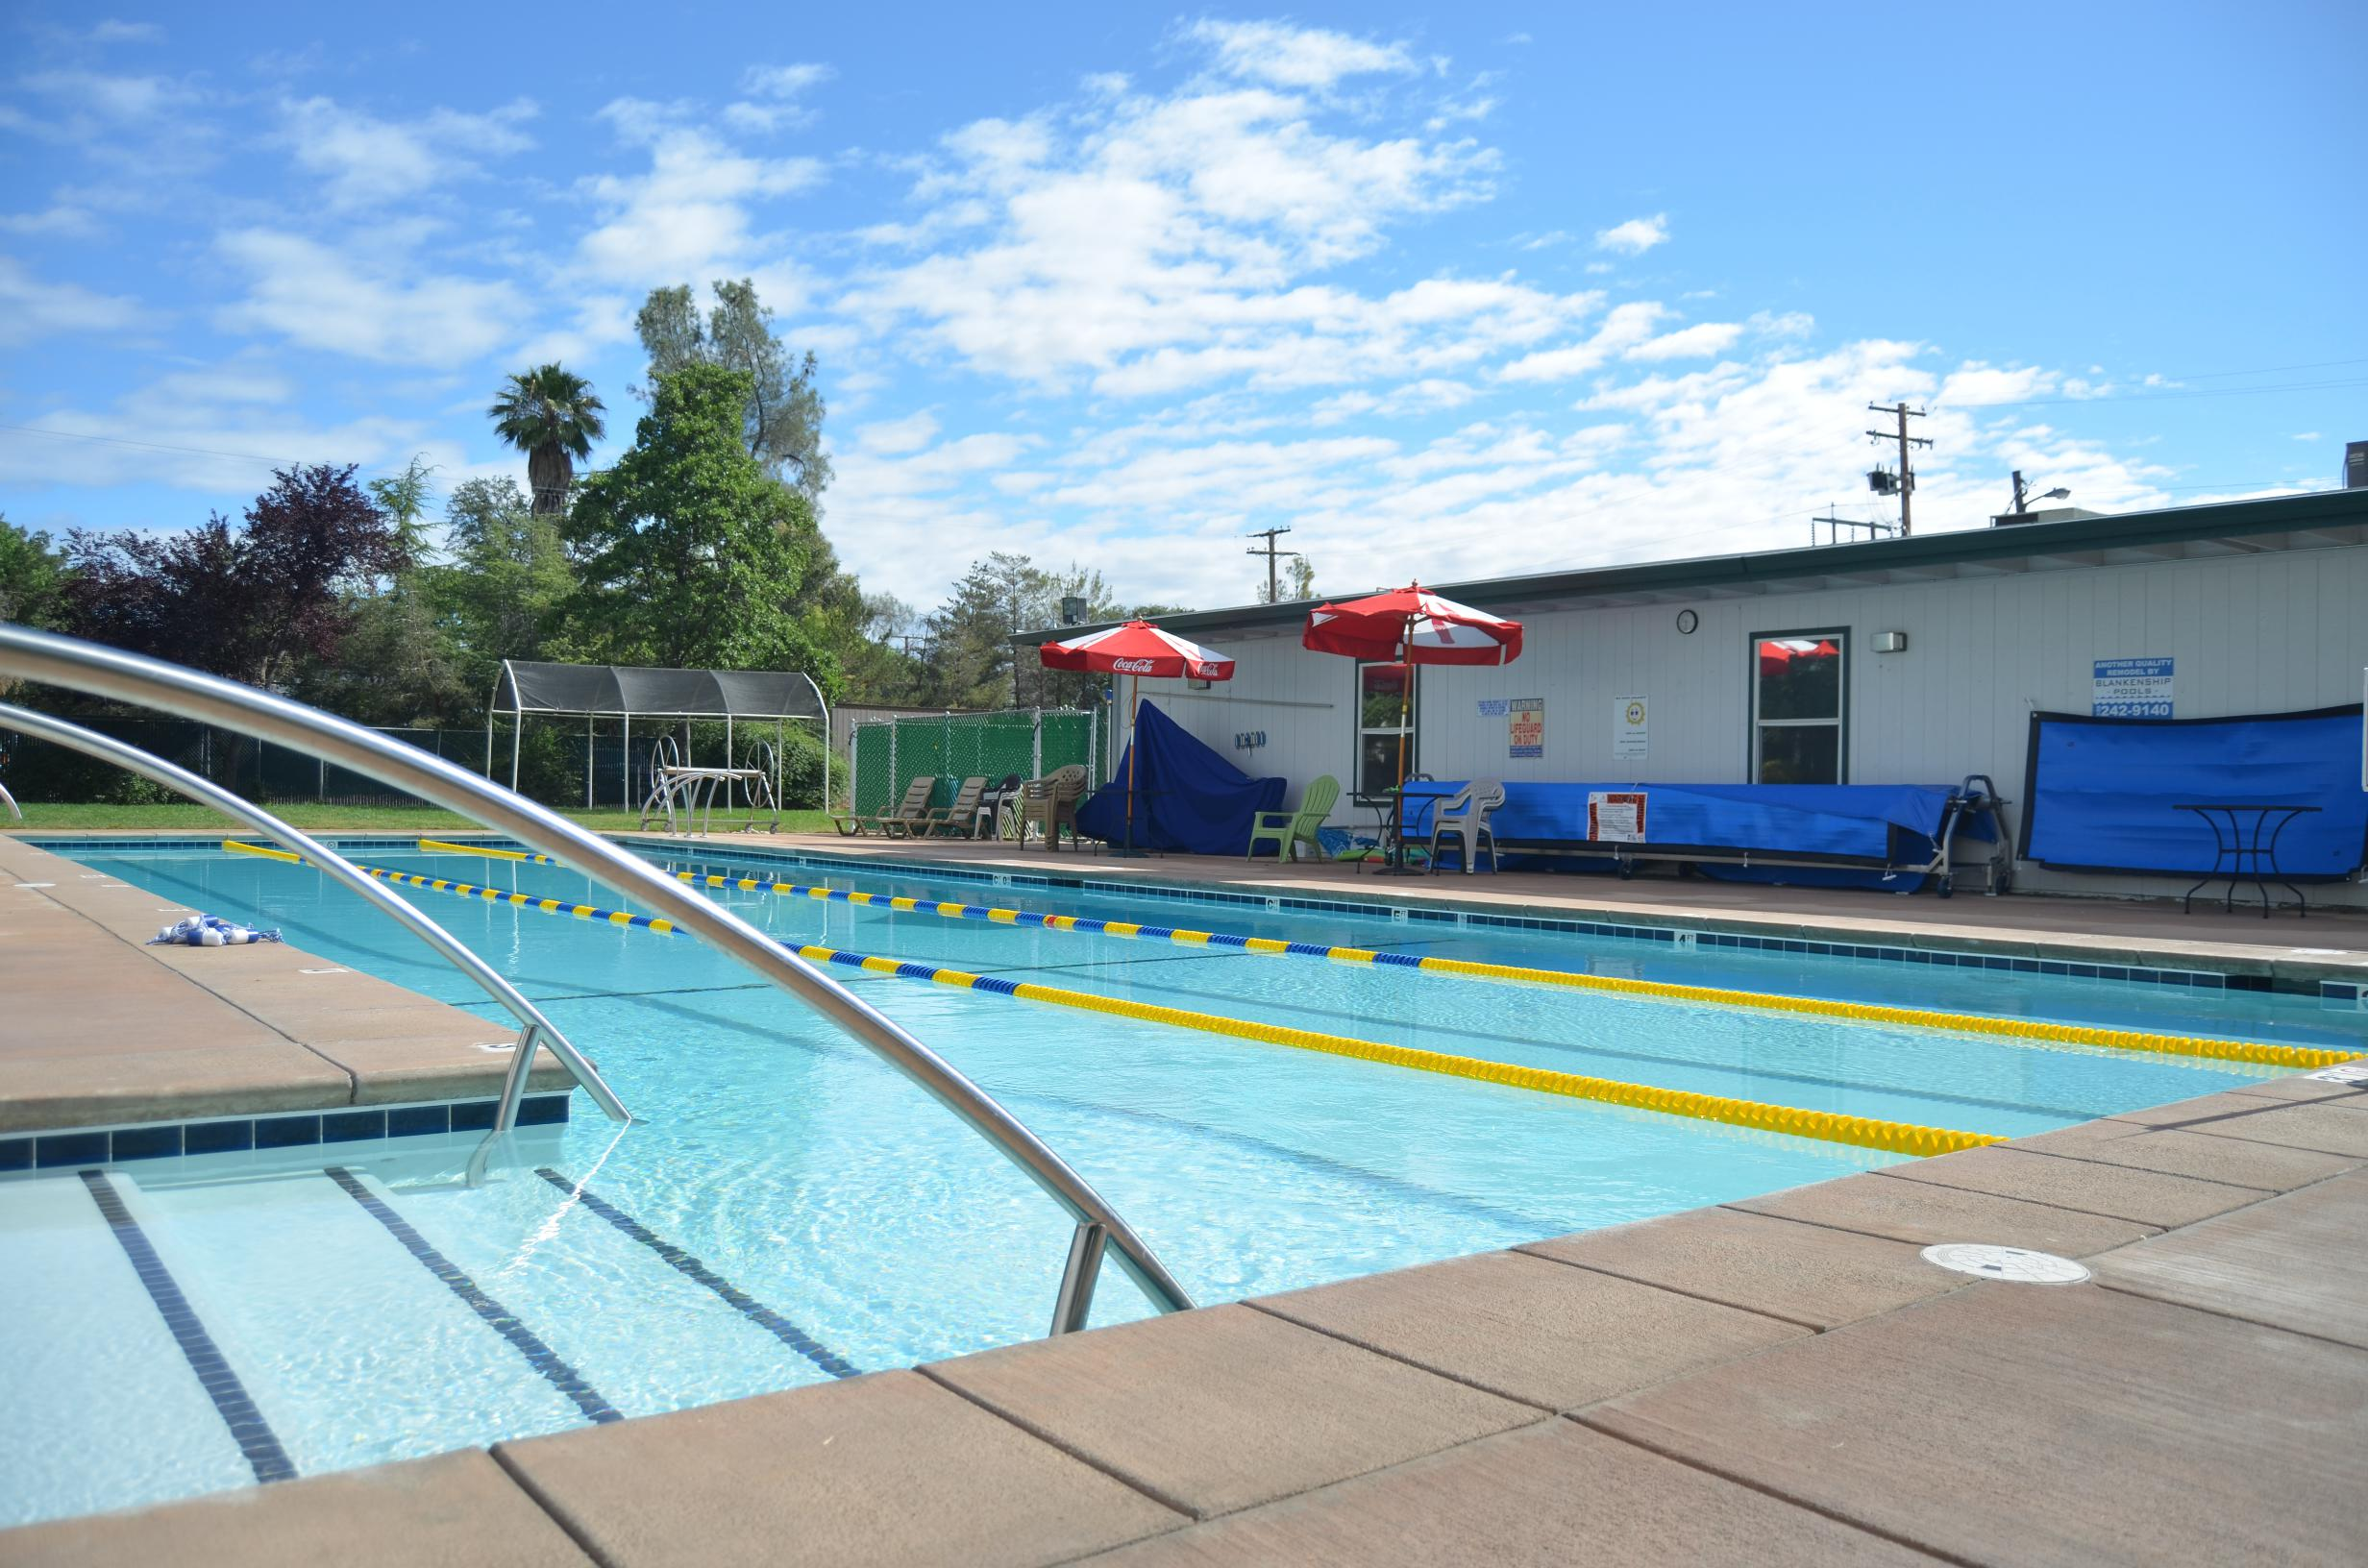 About redding gym redding gym for Outdoor pool